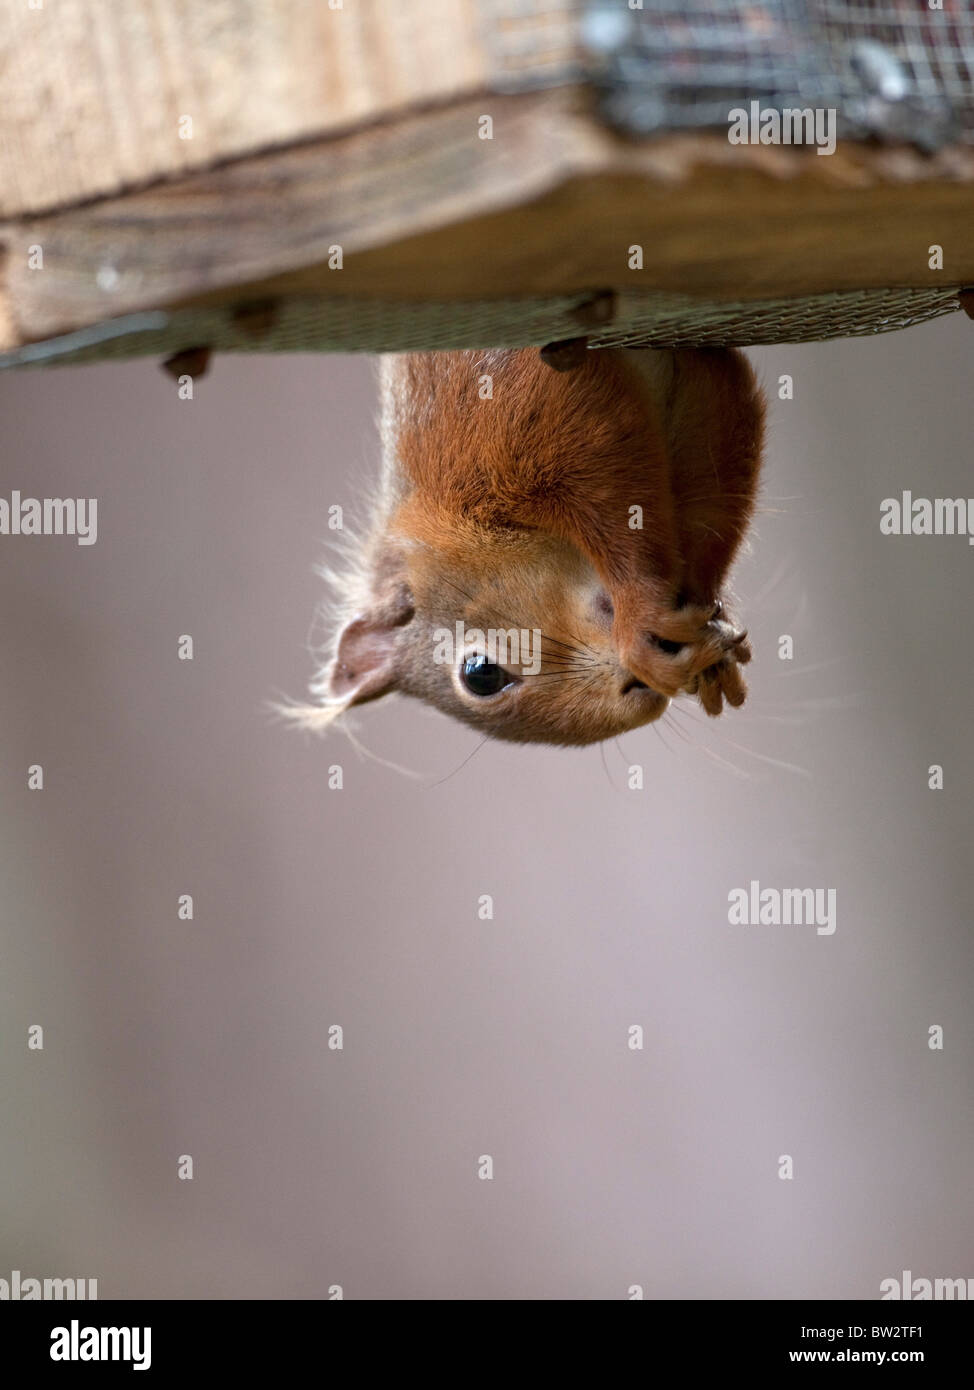 Cheeky red squirrel Sciurus vulgaris close up hanging upside down from a bird feeder to access peanuts - Stock Image